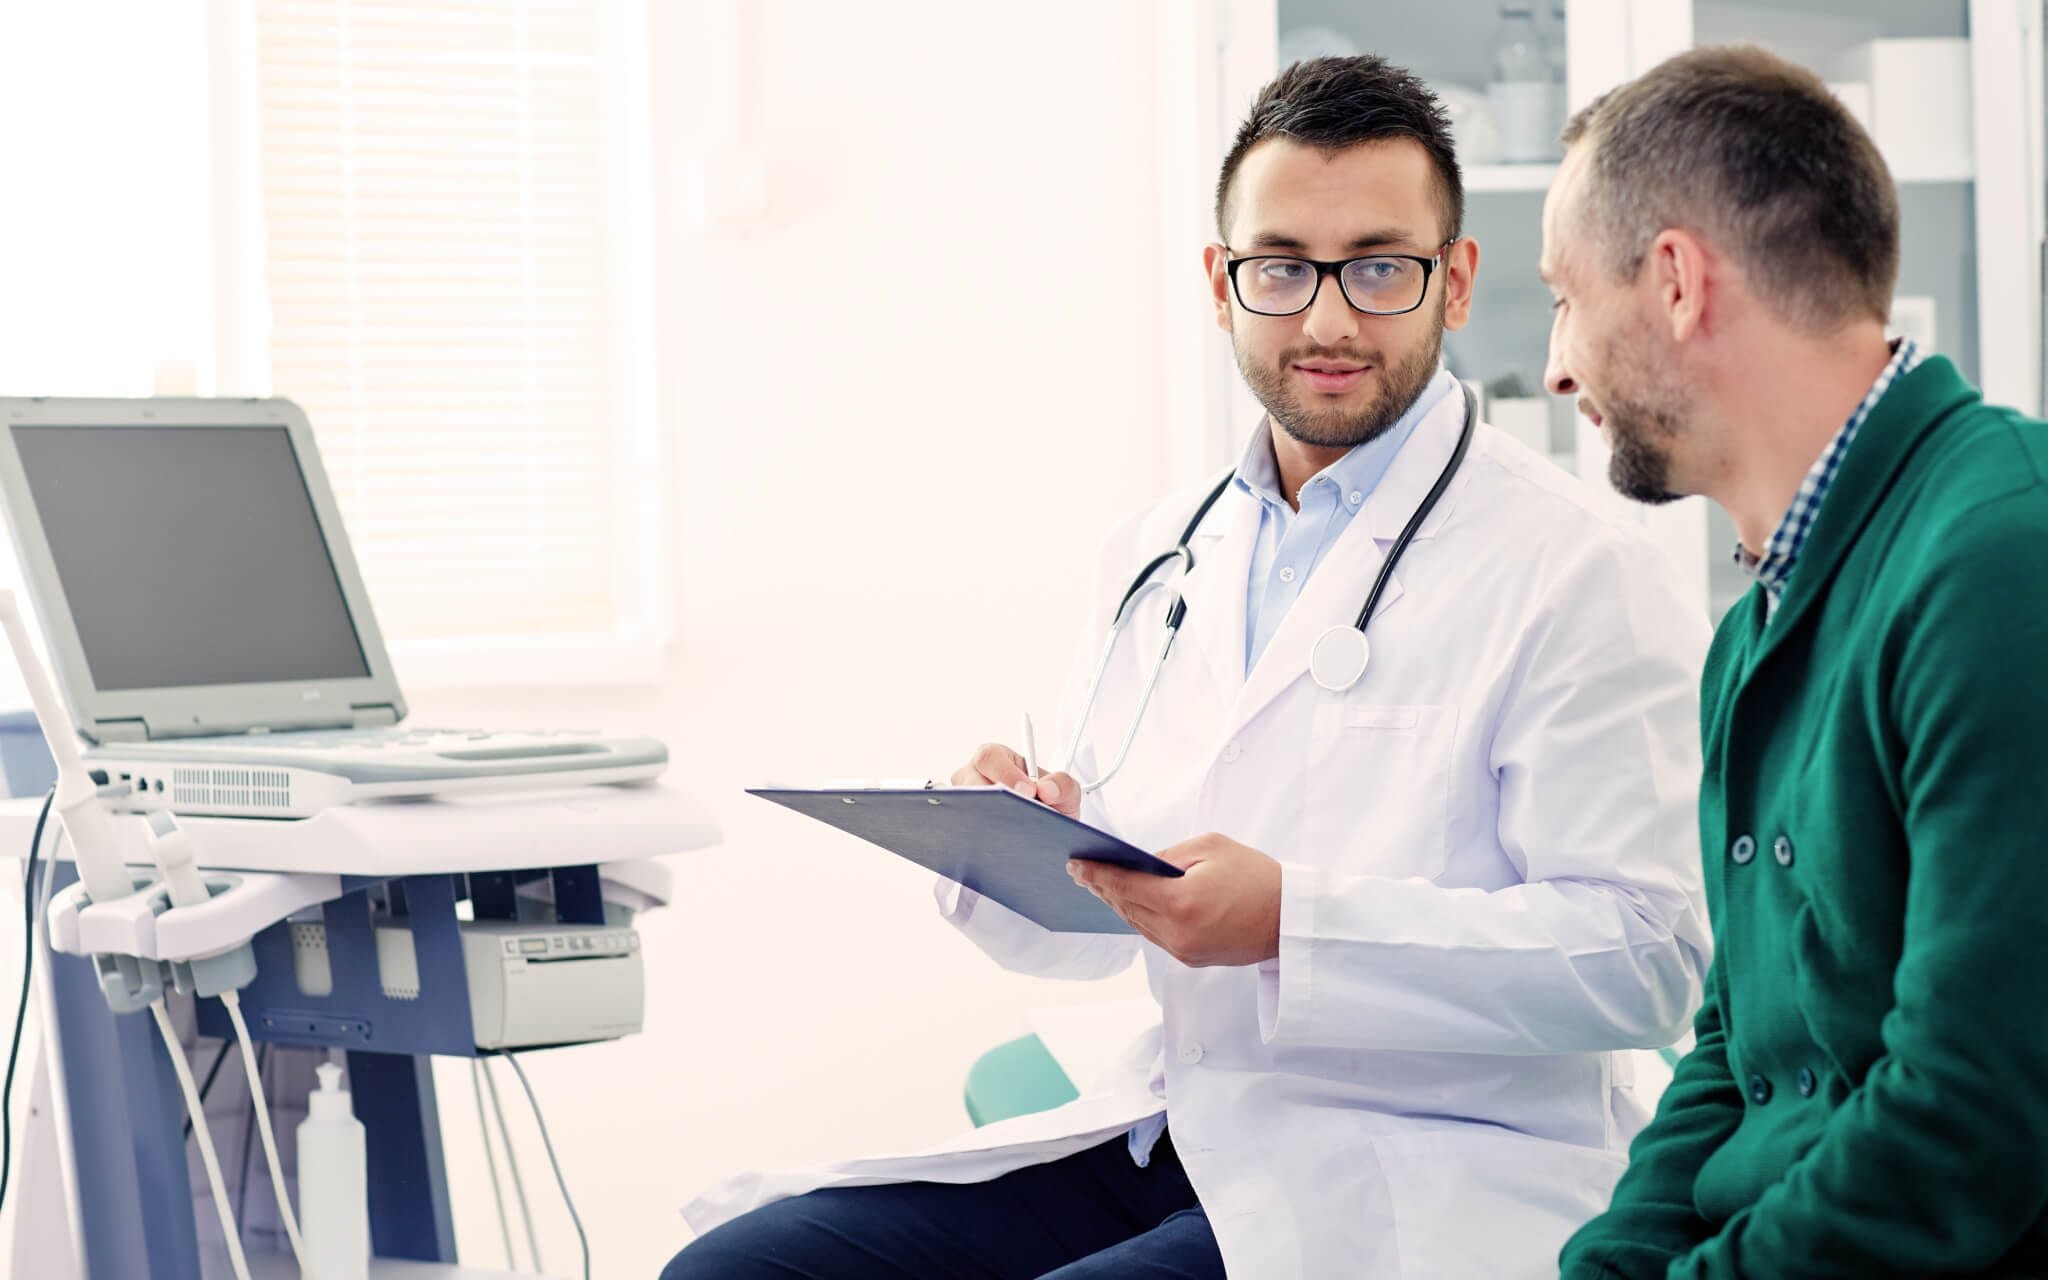 A doctor goes over his patient's mesothelioma medical records and timeline on his clipboard as his patient looks on.